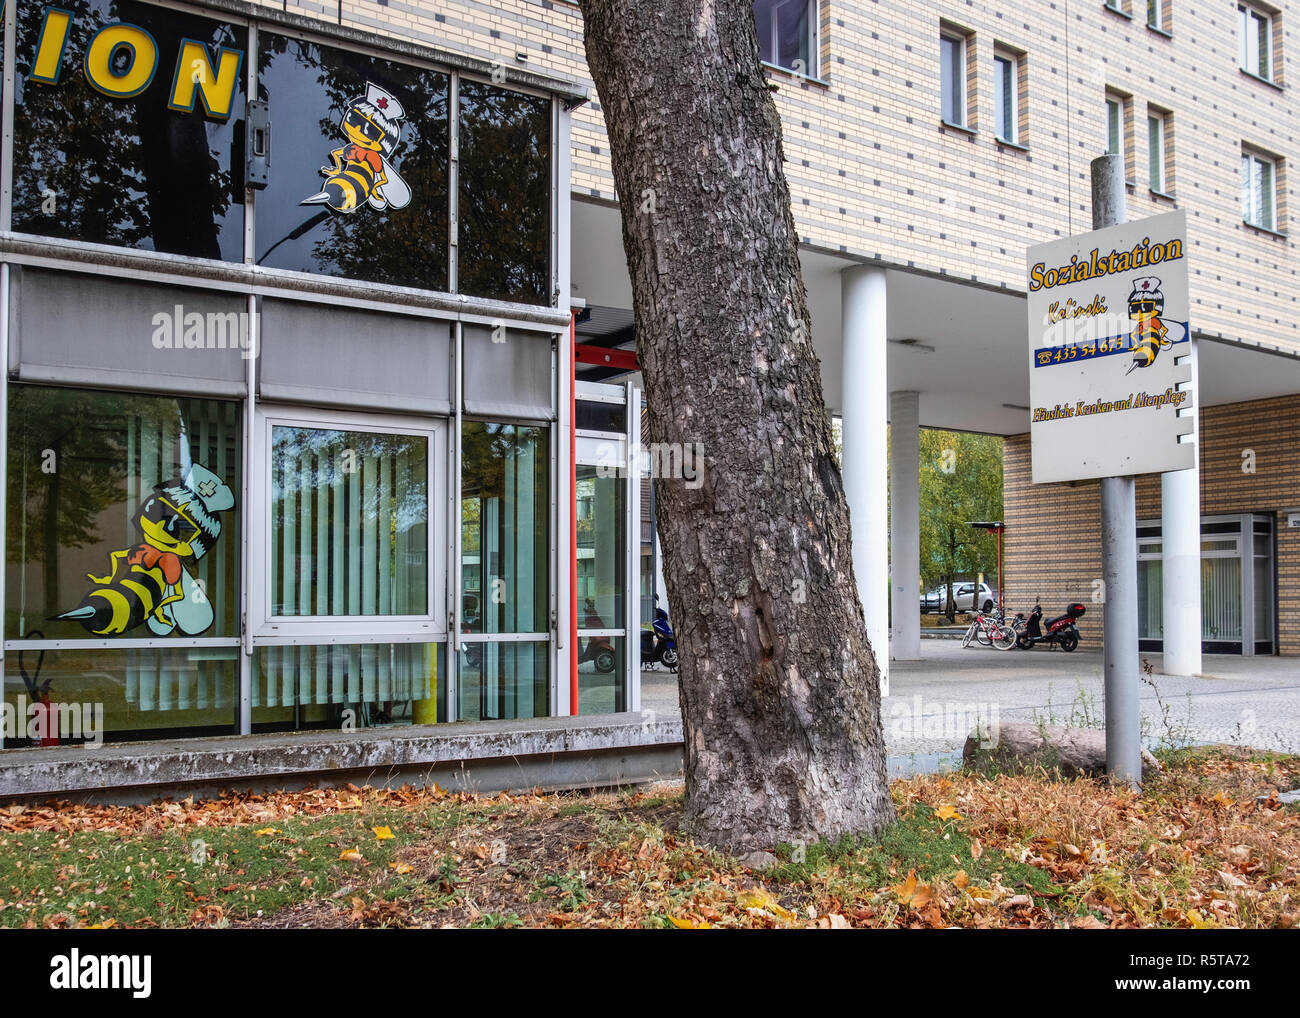 Berlin. Social Station Kolinski office. Providers of outpatient home nursing and home health care in Bernauer strasse. - Stock Image